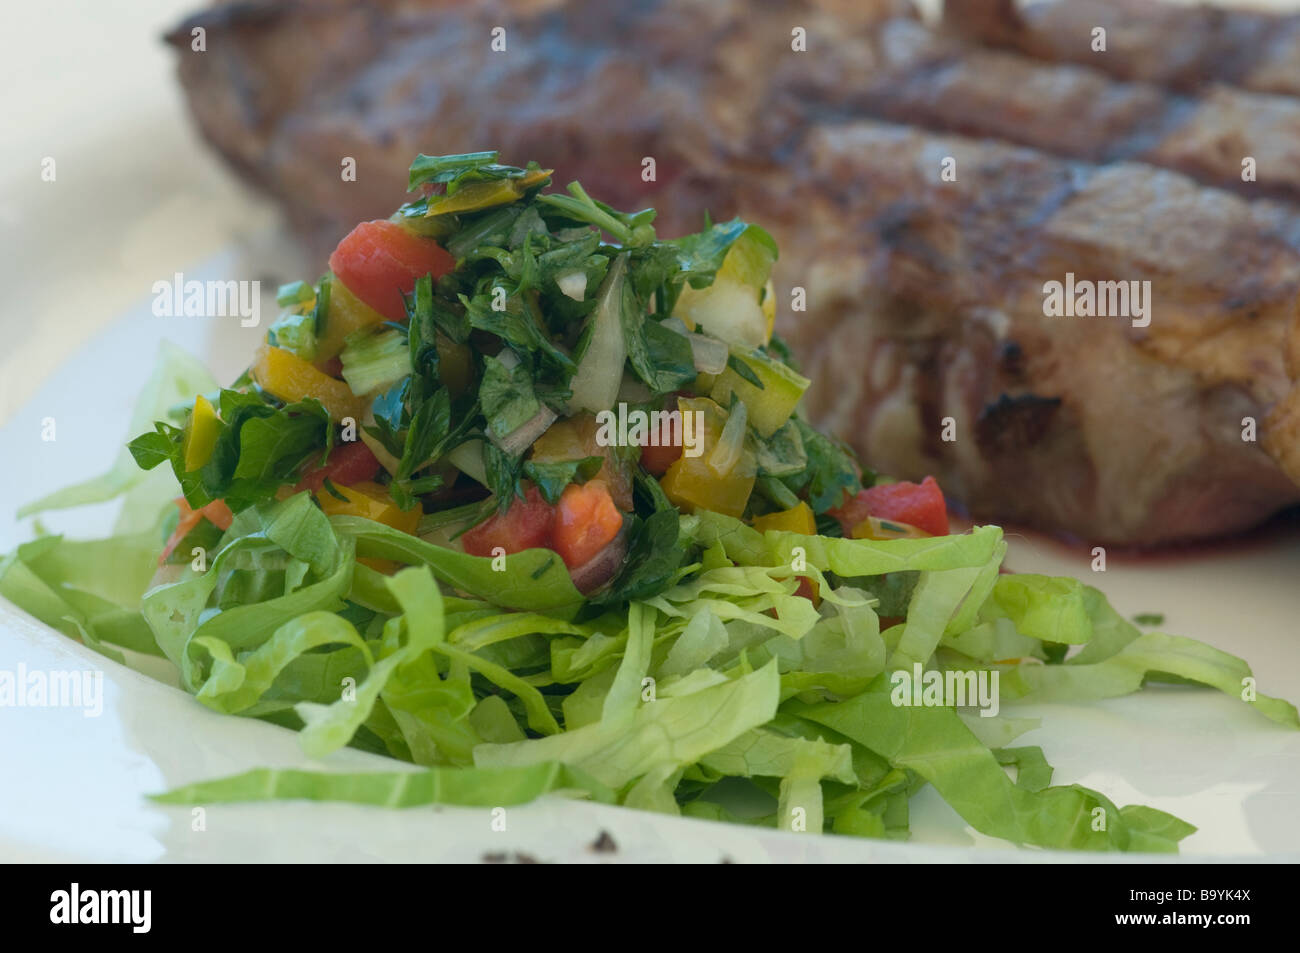 Detail of a juicy prime rib entrecote steak with vegetable salad - Stock Image